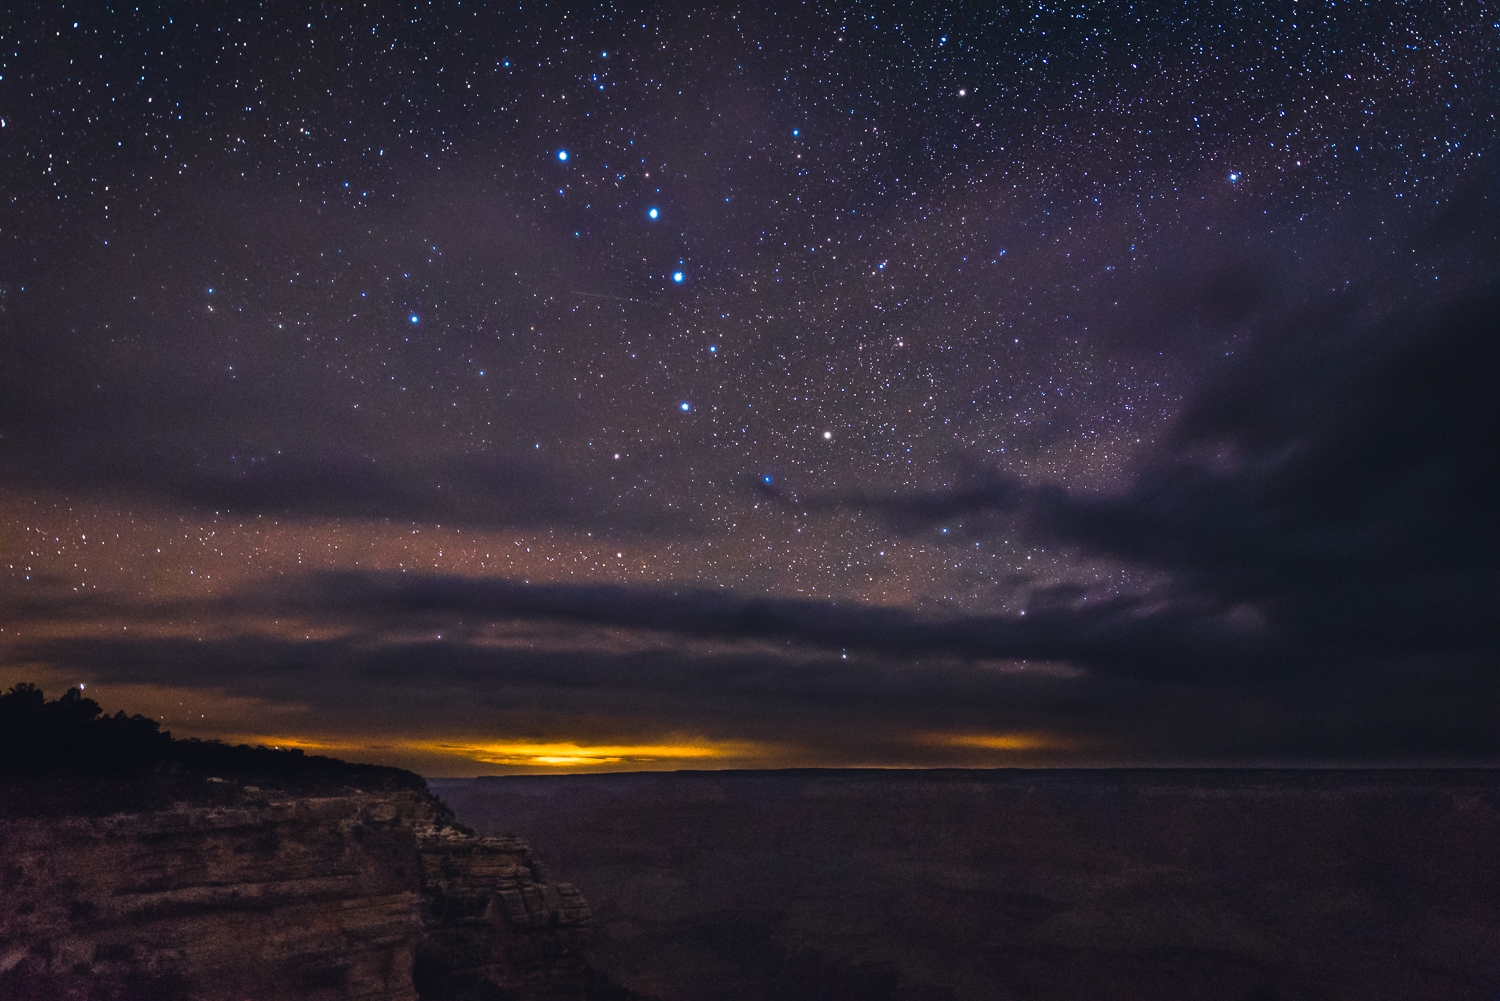 Big Dipper. (Can you see it?) Looking west from Mather Point, the orange glow in the distance is from Las Vegas, over 100 miles away...